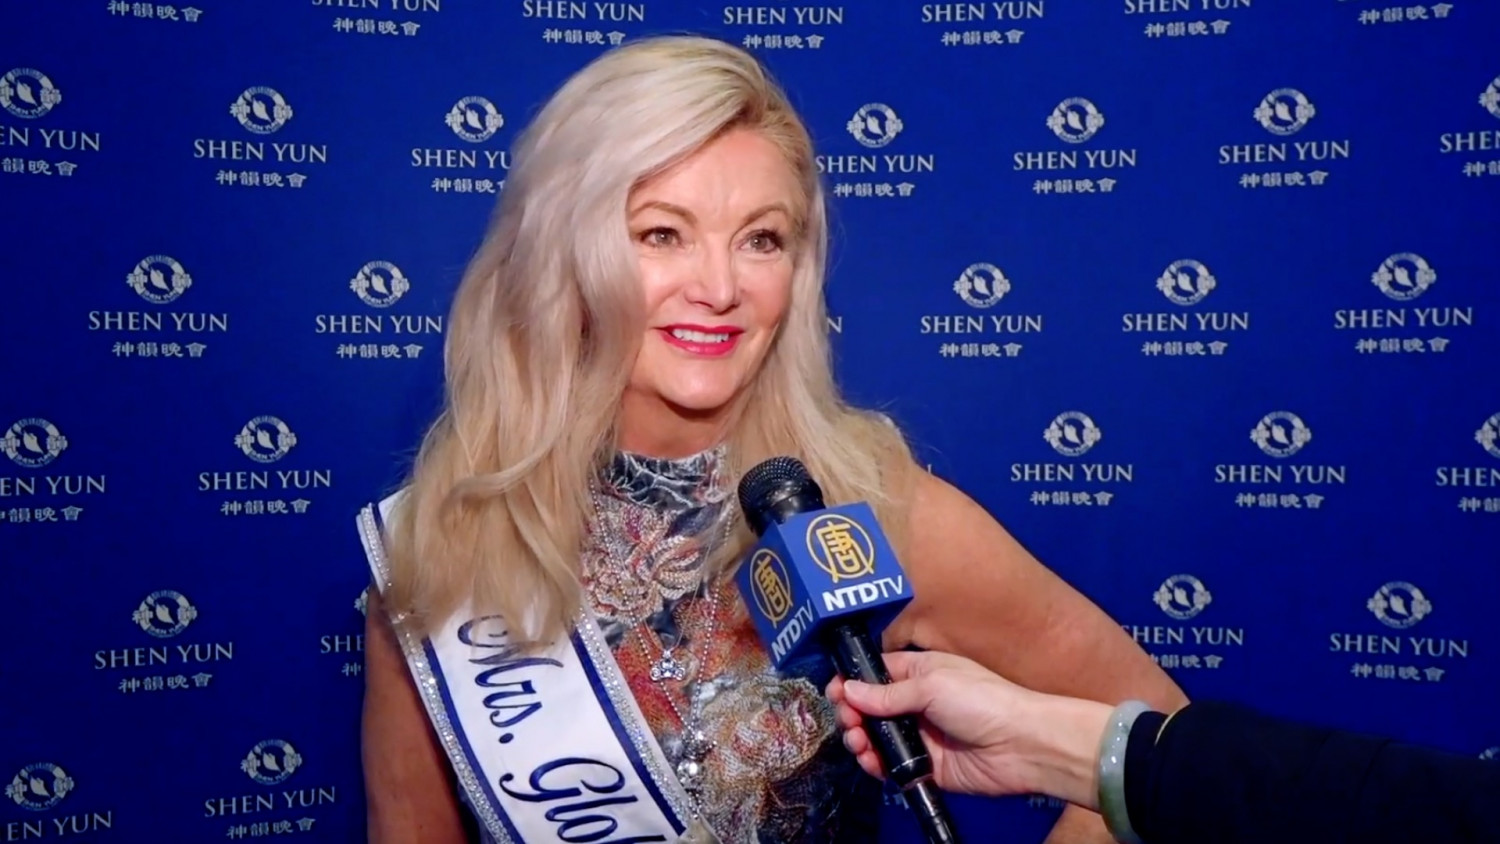 Mrs. Global America: There Is Divine Purpose at the Heart of Shen Yun